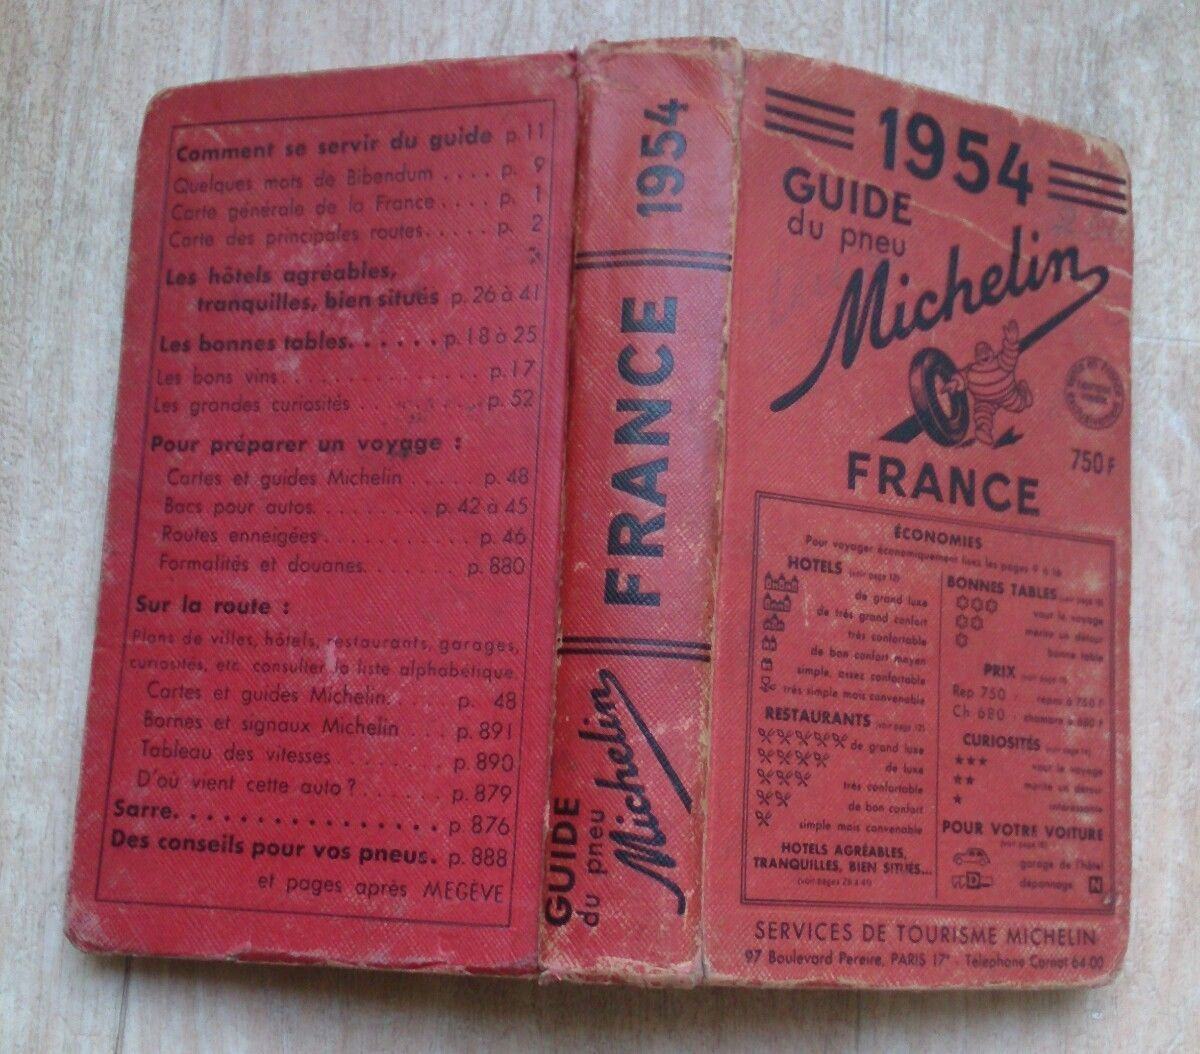 1954 Guide Rouge Michelin France Check More At Https Lazidoshop Com Product 1954 Guide Rouge Michelin France